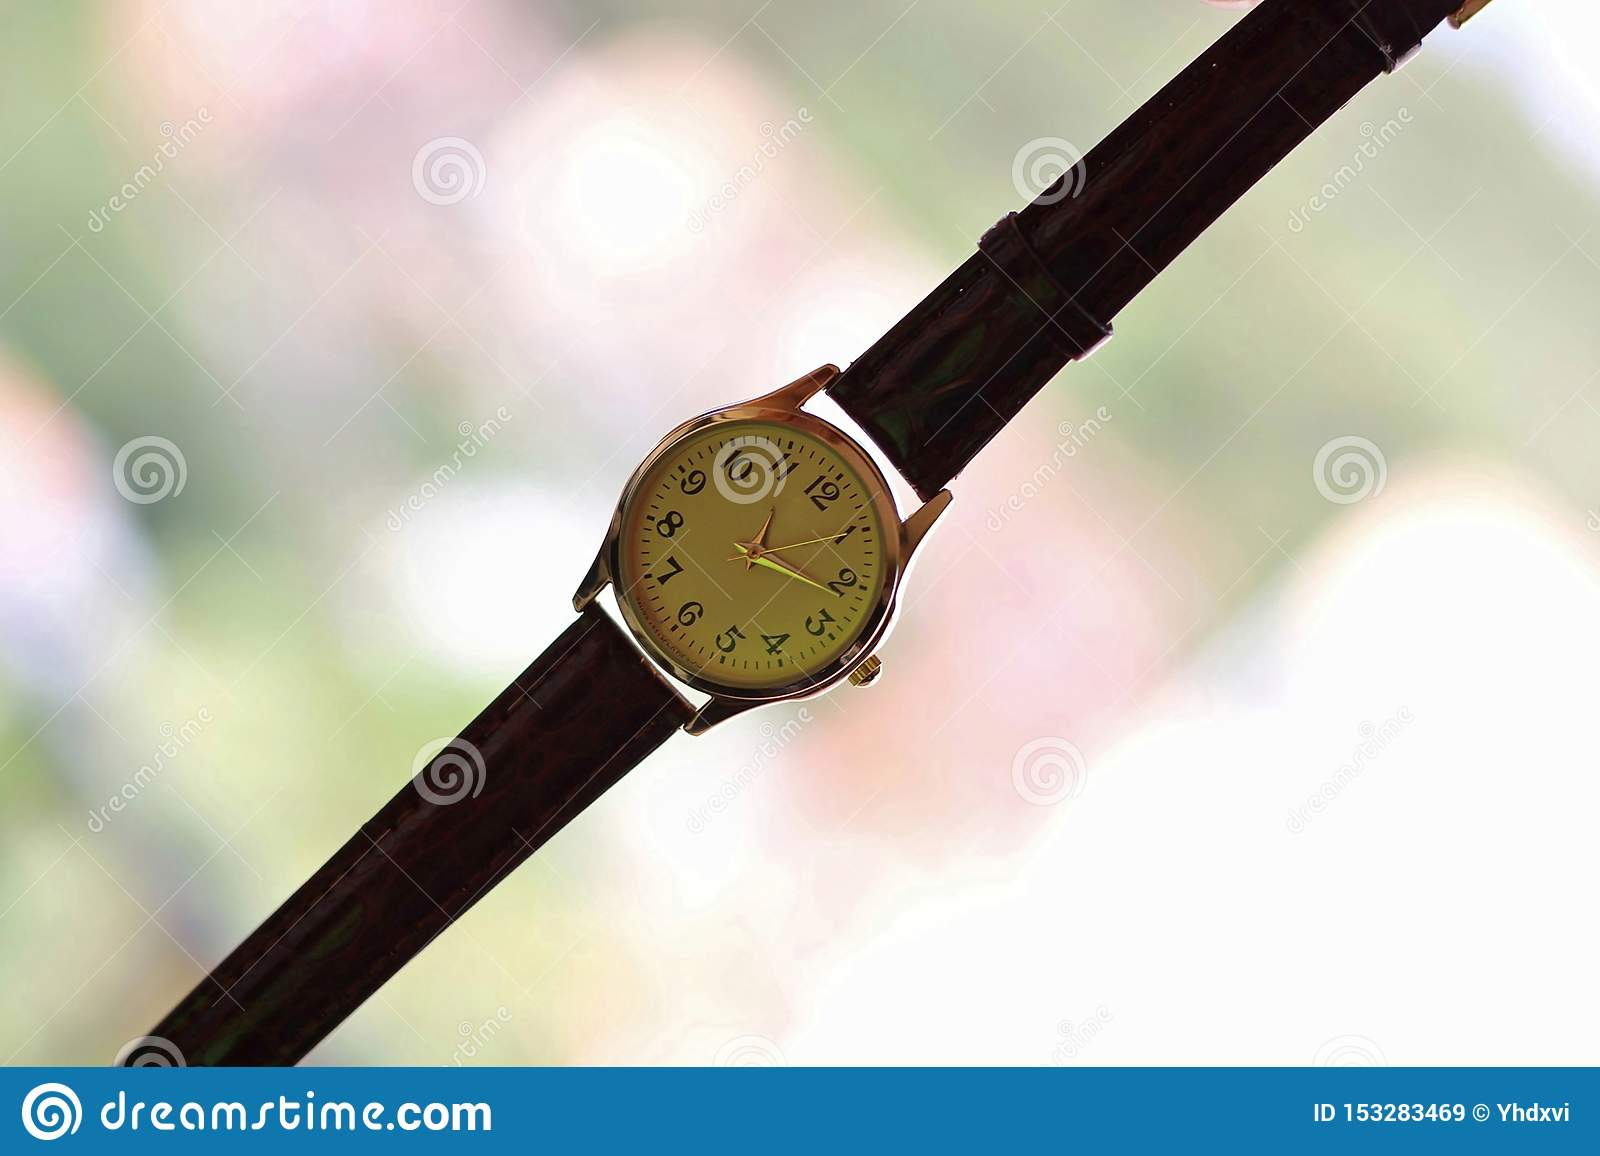 gold and quartz watch with leather strap.